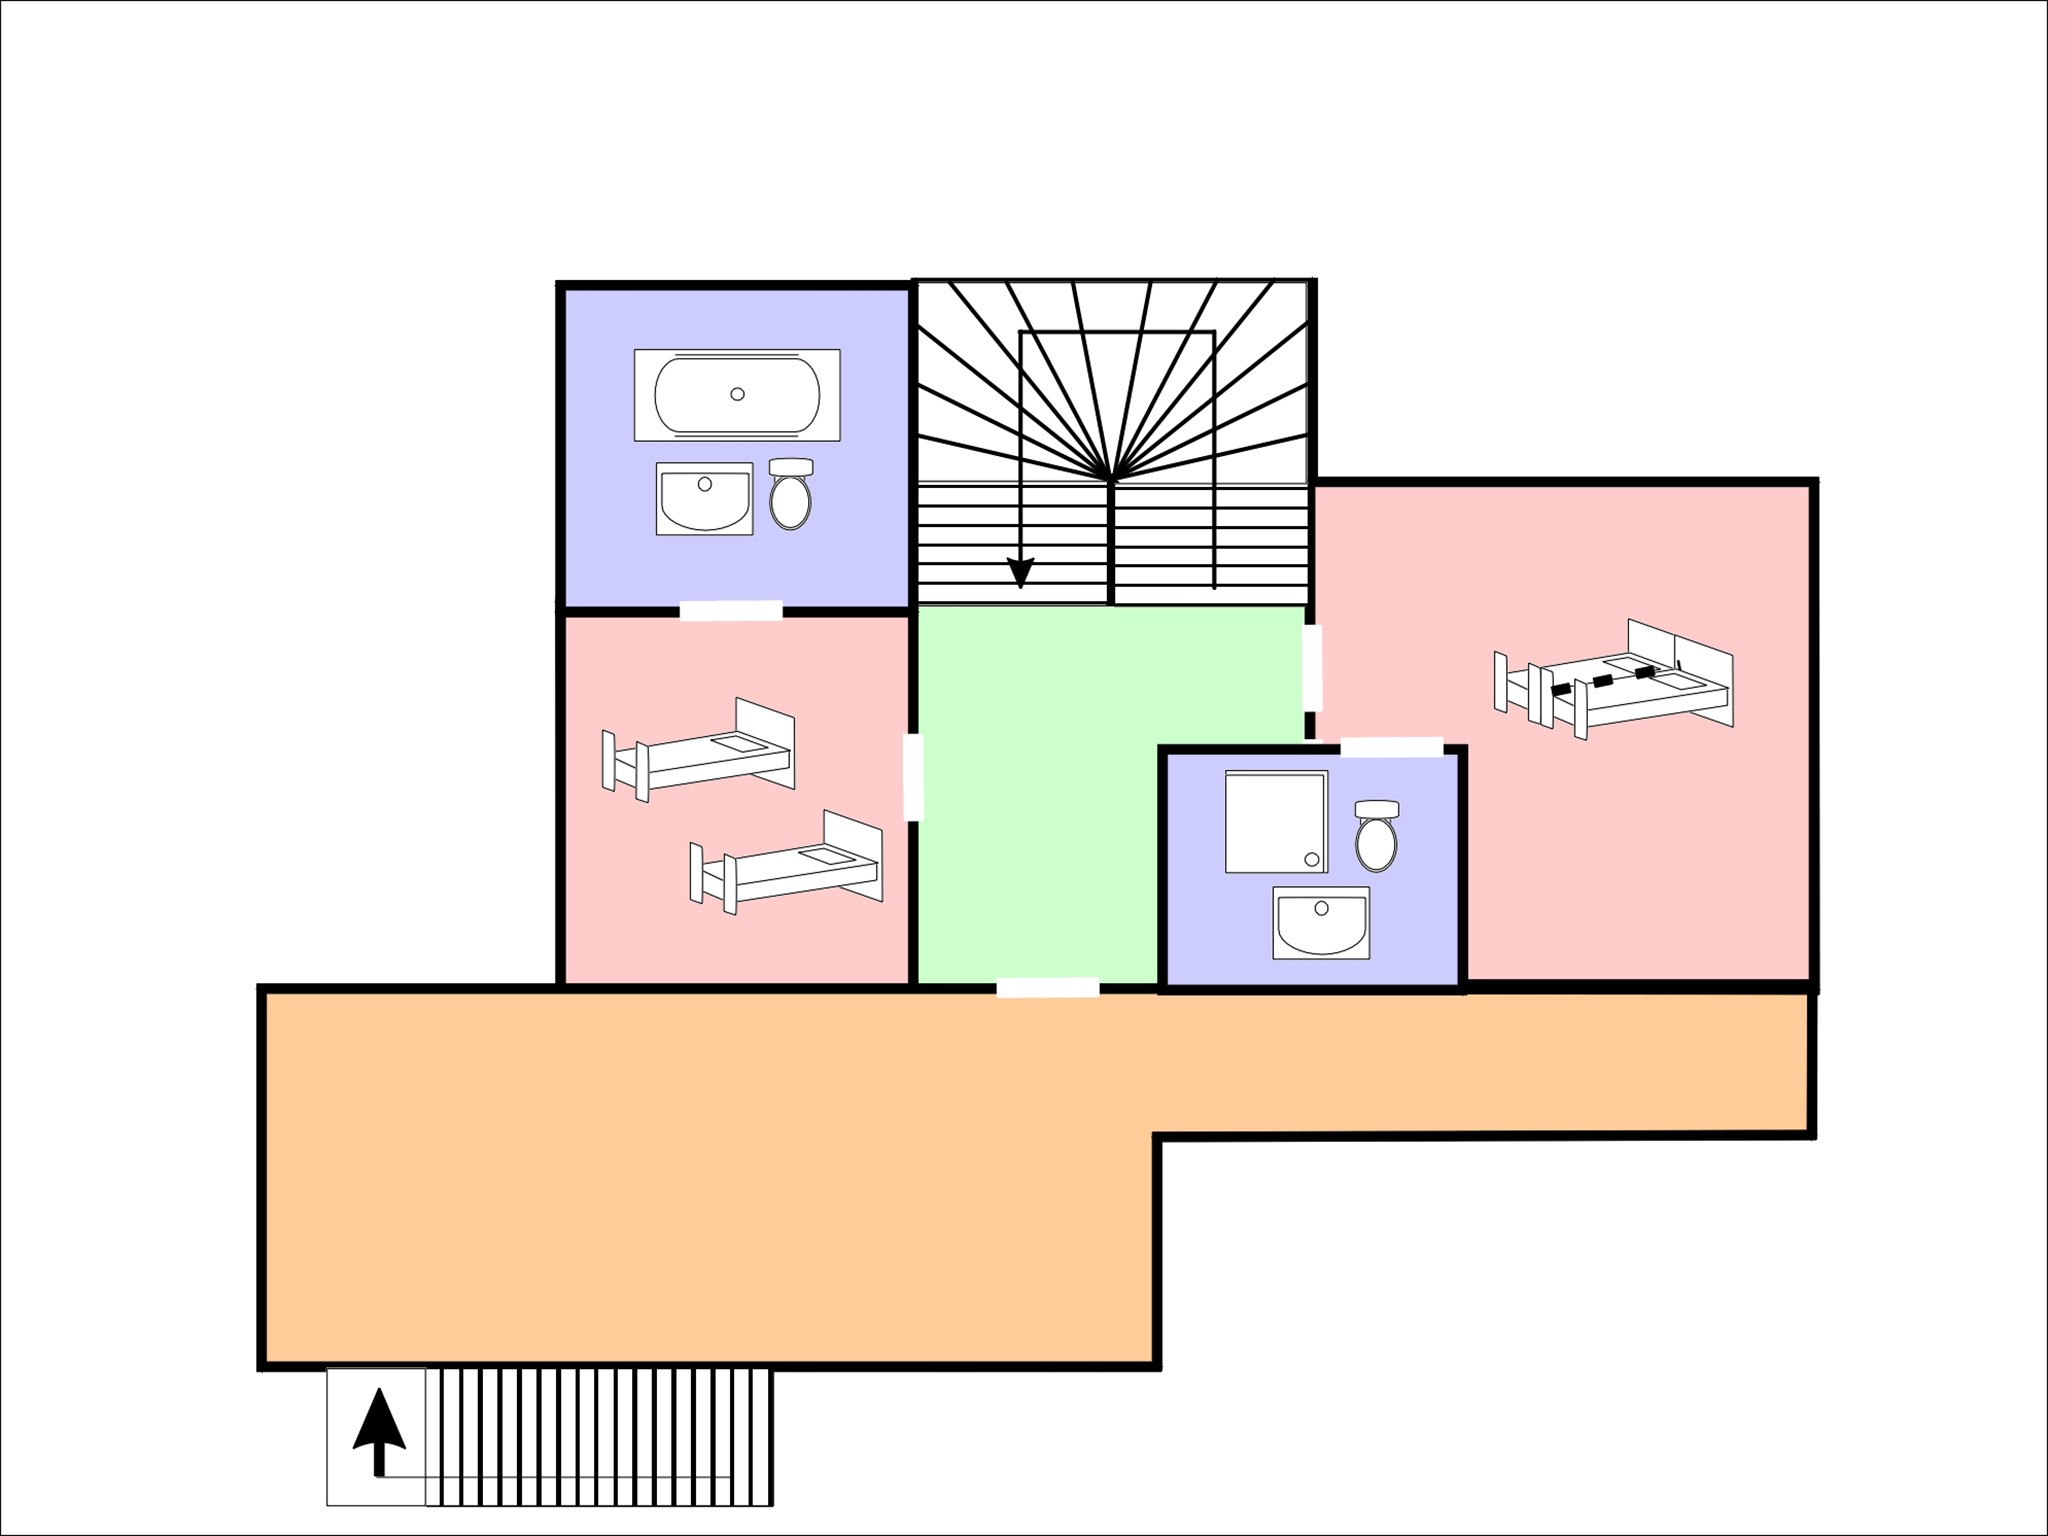 Chalet Brock - floor plan - level 1